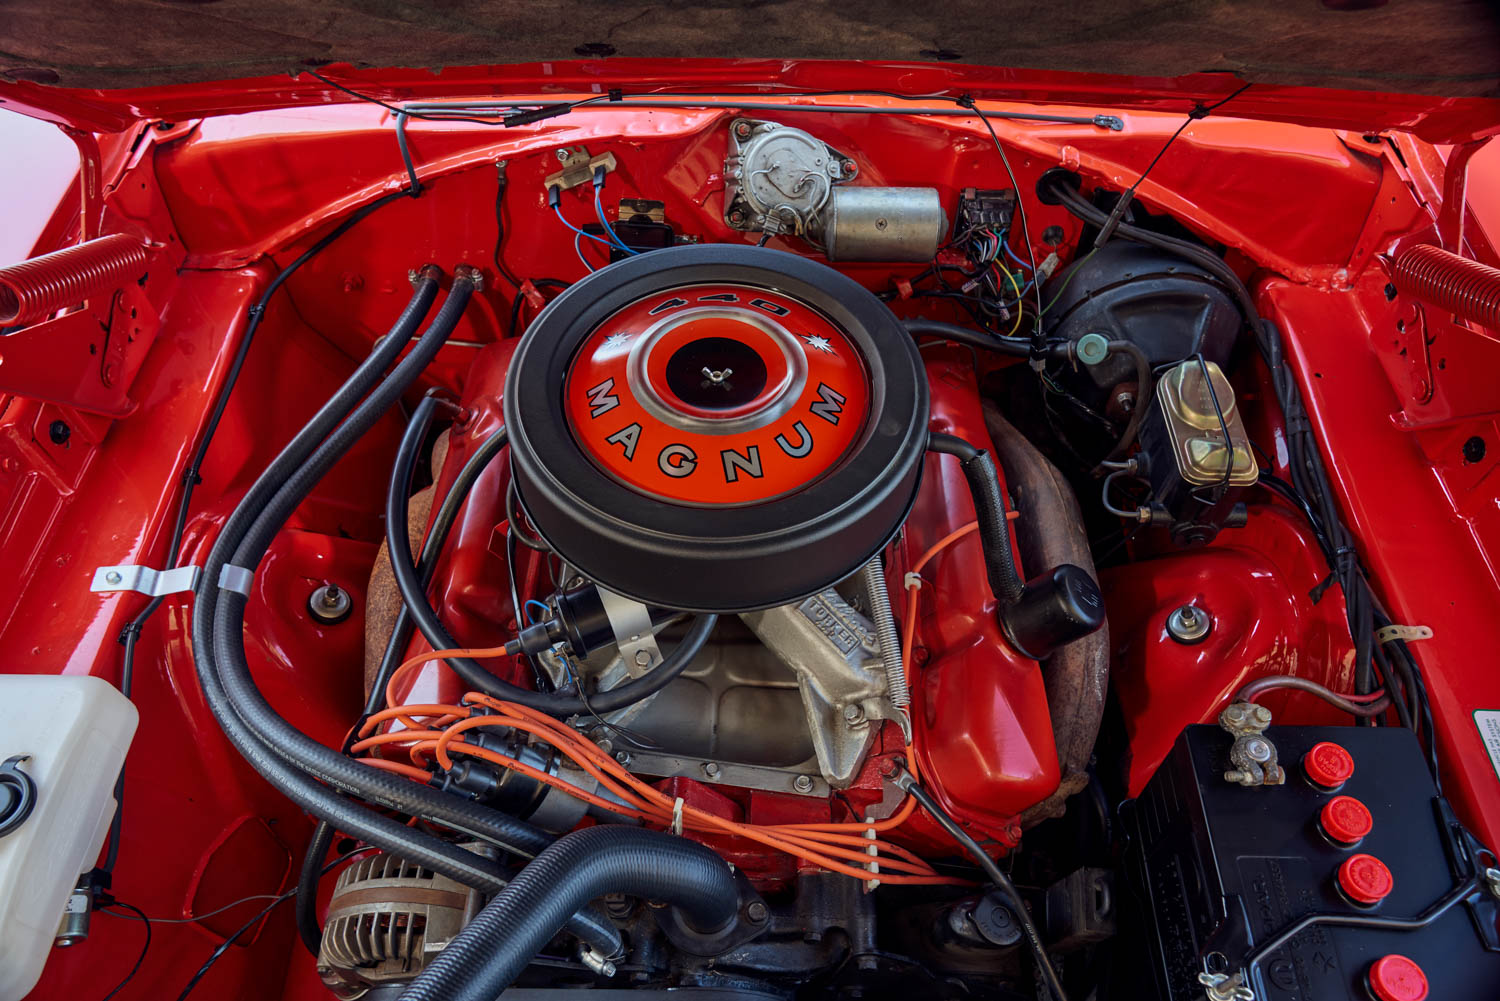 The largest of five available U.S. Charger engines offered in 1969 was the Magnum 440, good for 375 horsepower and about 12 mpg if you were easy on the gas.